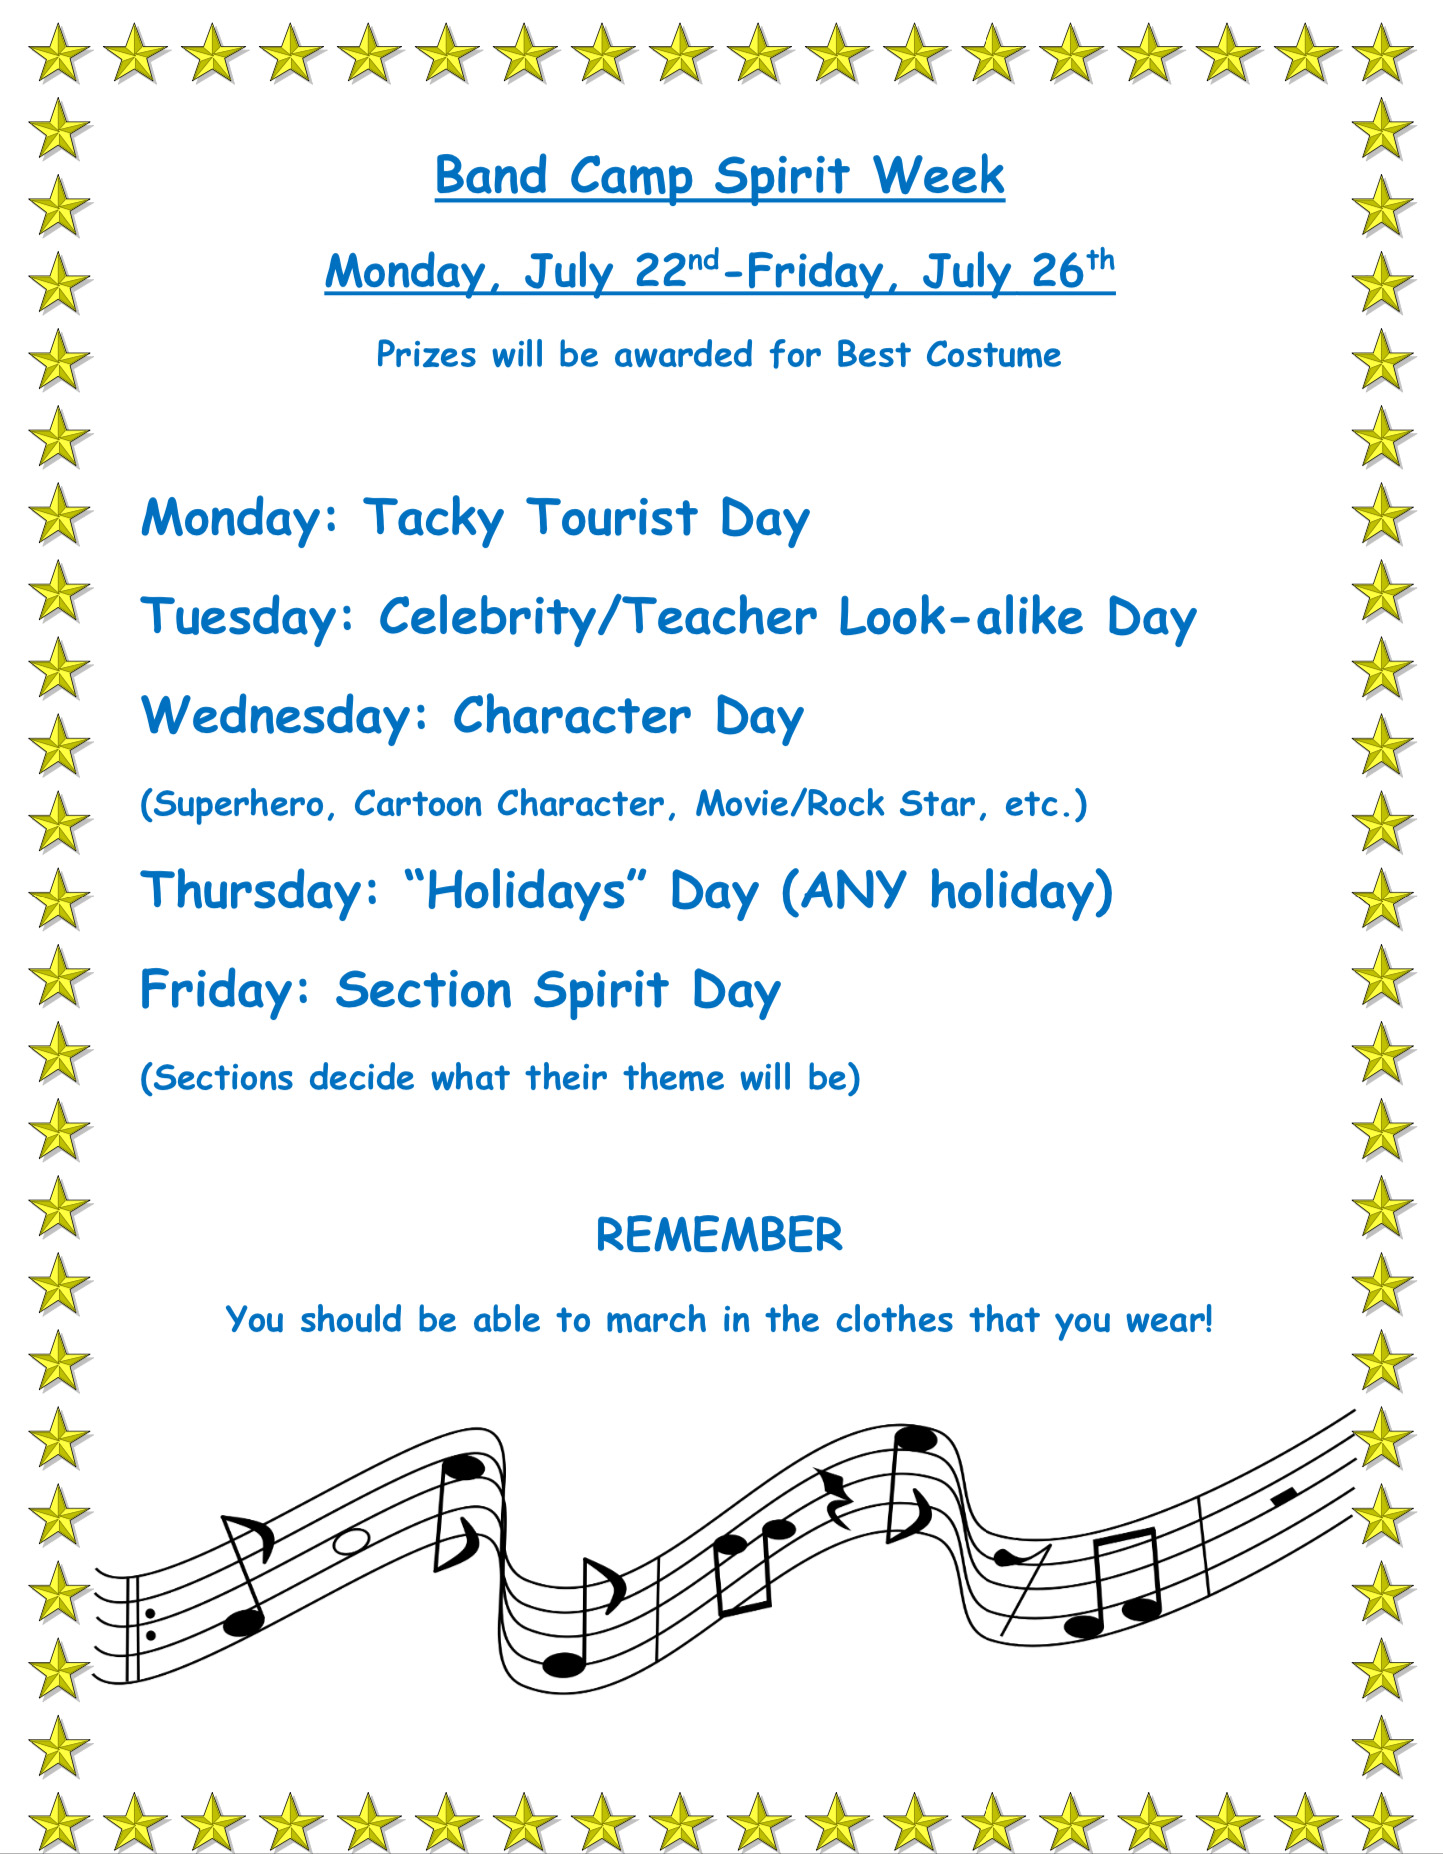 Band Camp schedule_edited.jpg